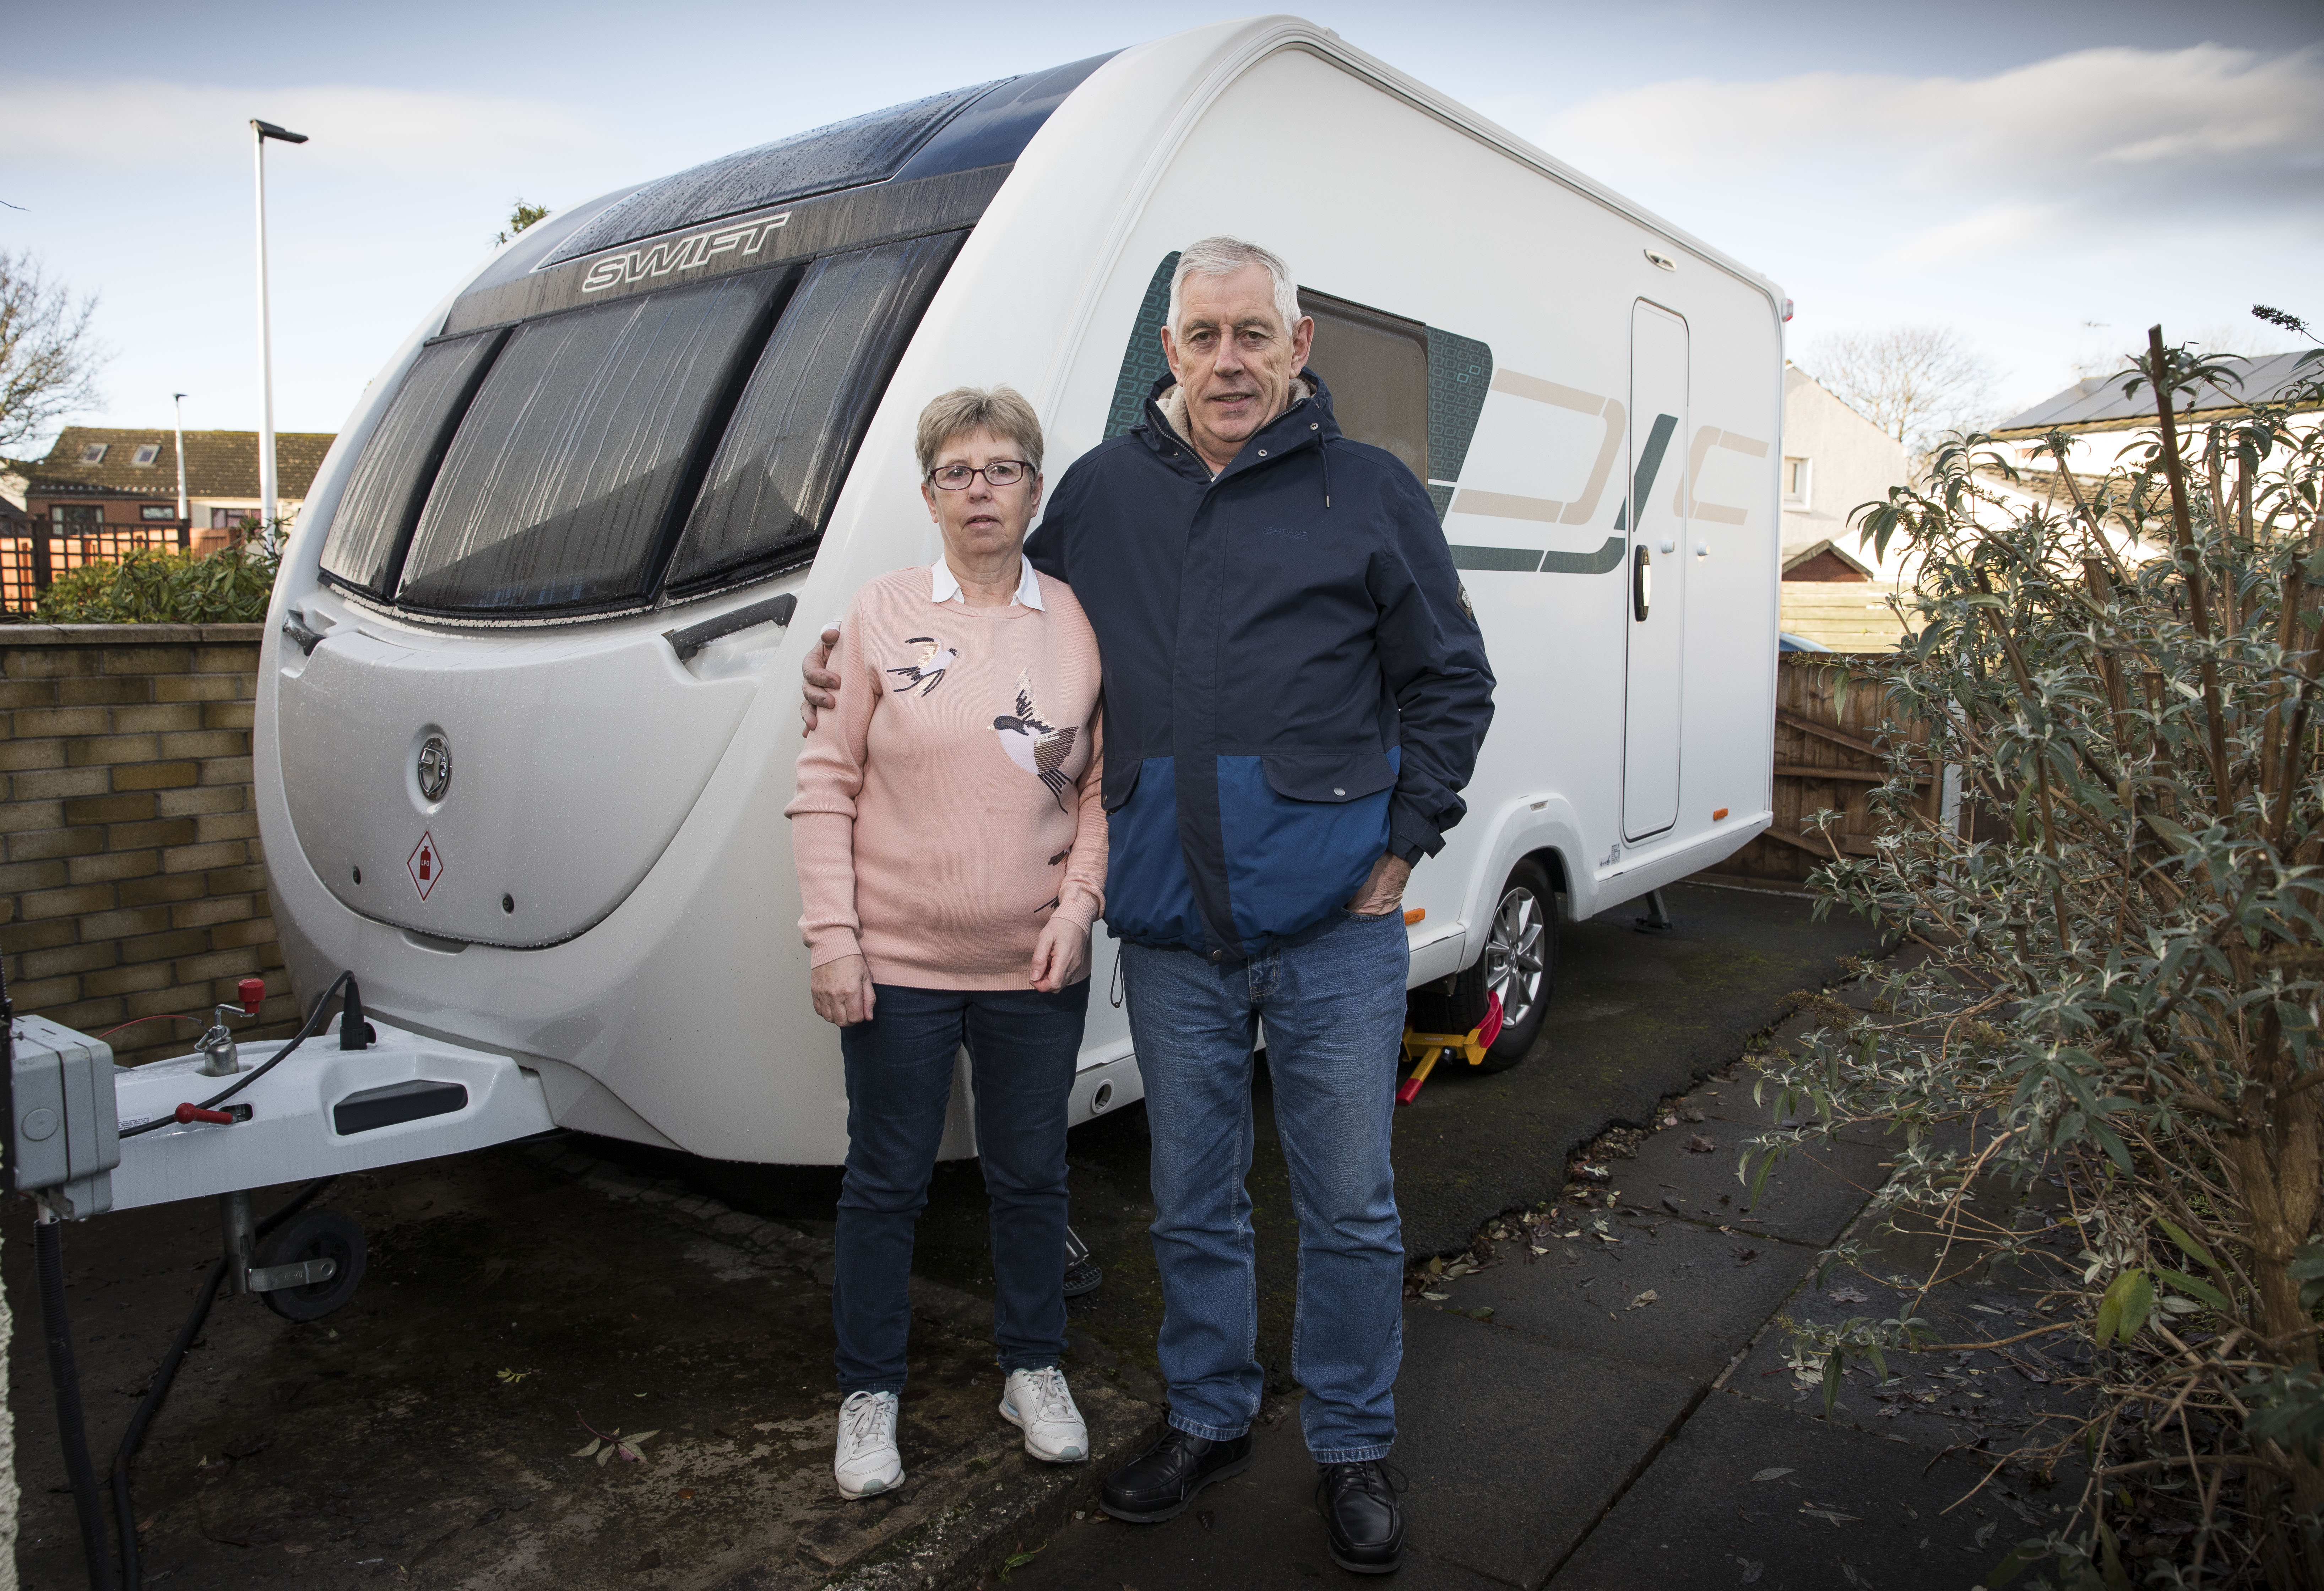 Alexander Strathie from Grangemouth has had no end of problems with his Caravan. (Jamie Williamson).